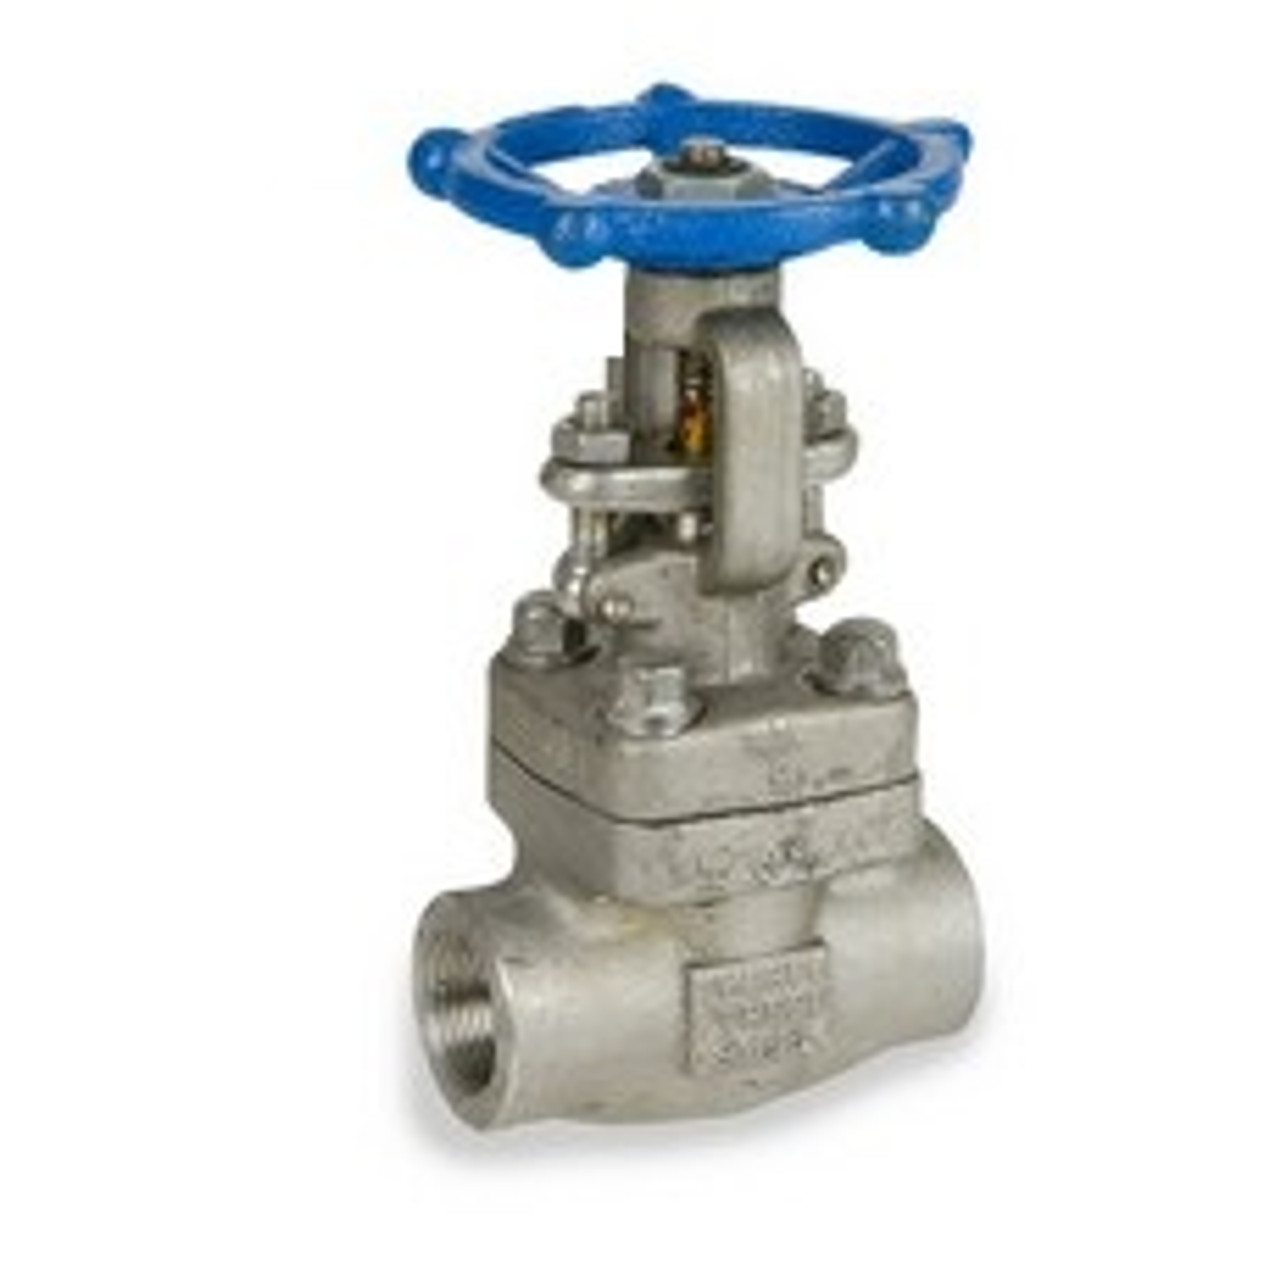 3//4 Globe Valve 800# Threaded 316L Stainless Steel Forged A182 OS/&Y Sharpe #44836